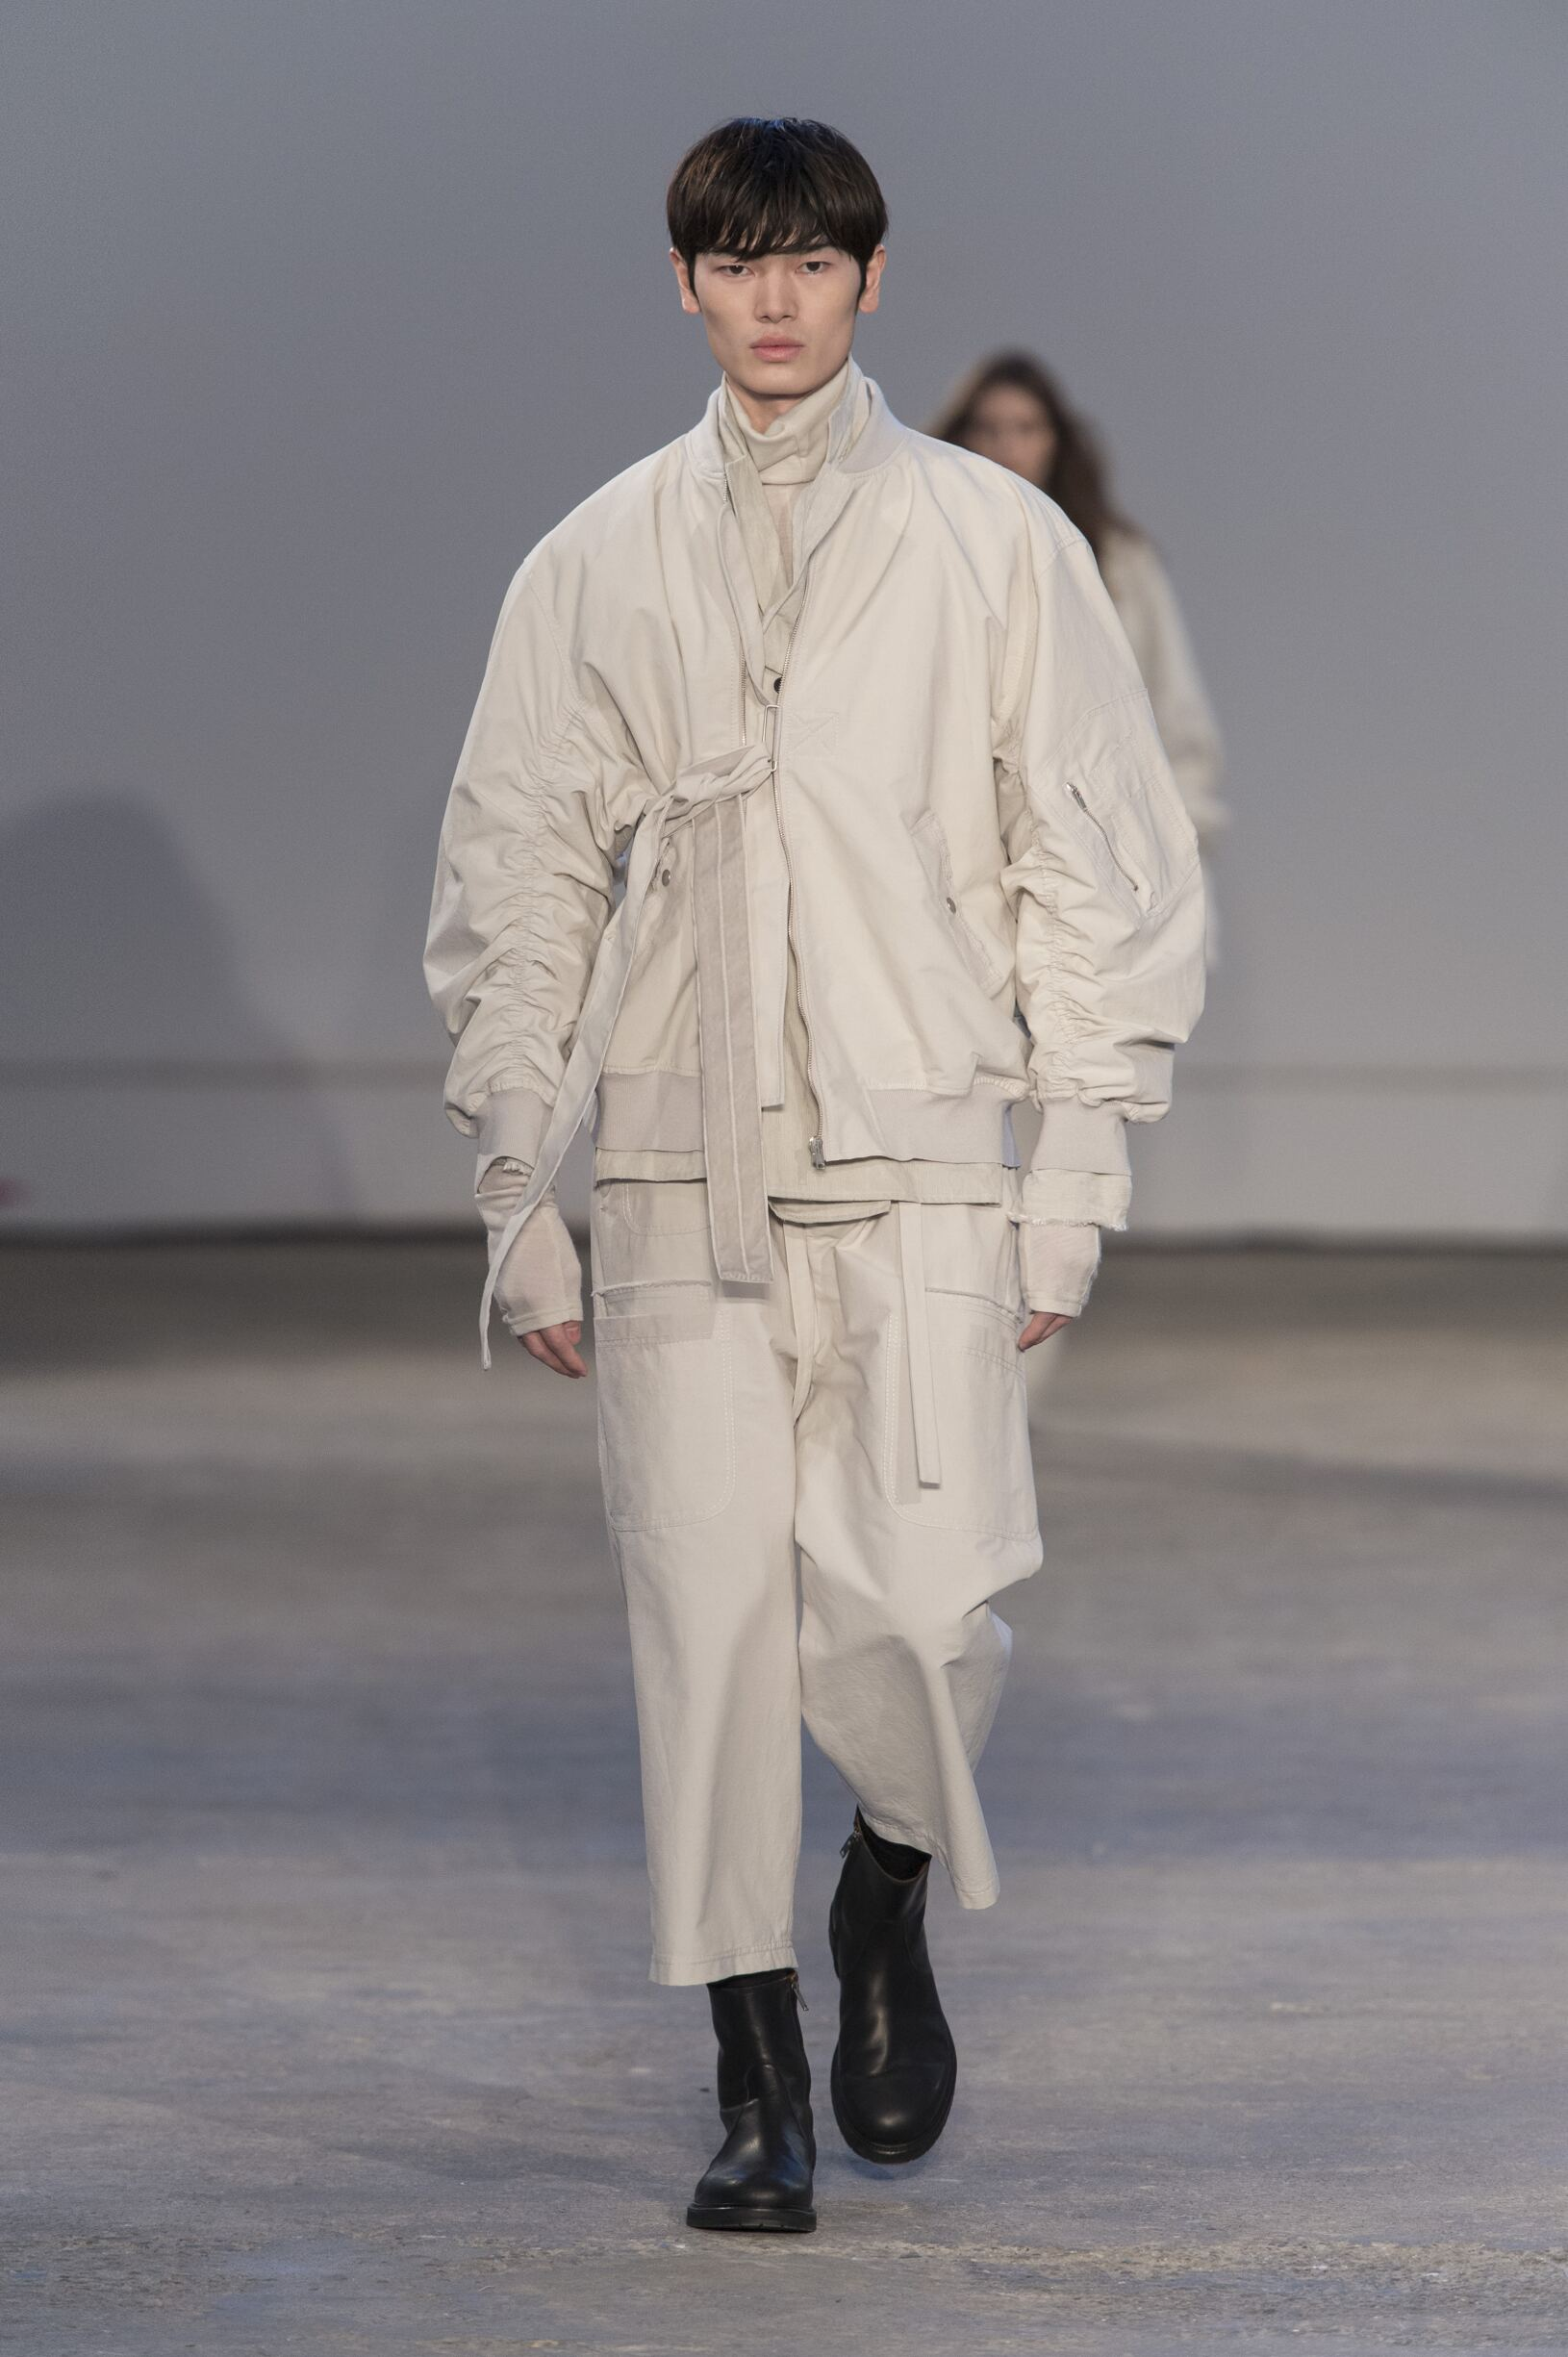 Catwalk Damir Doma Man Fashion Show Winter 2017